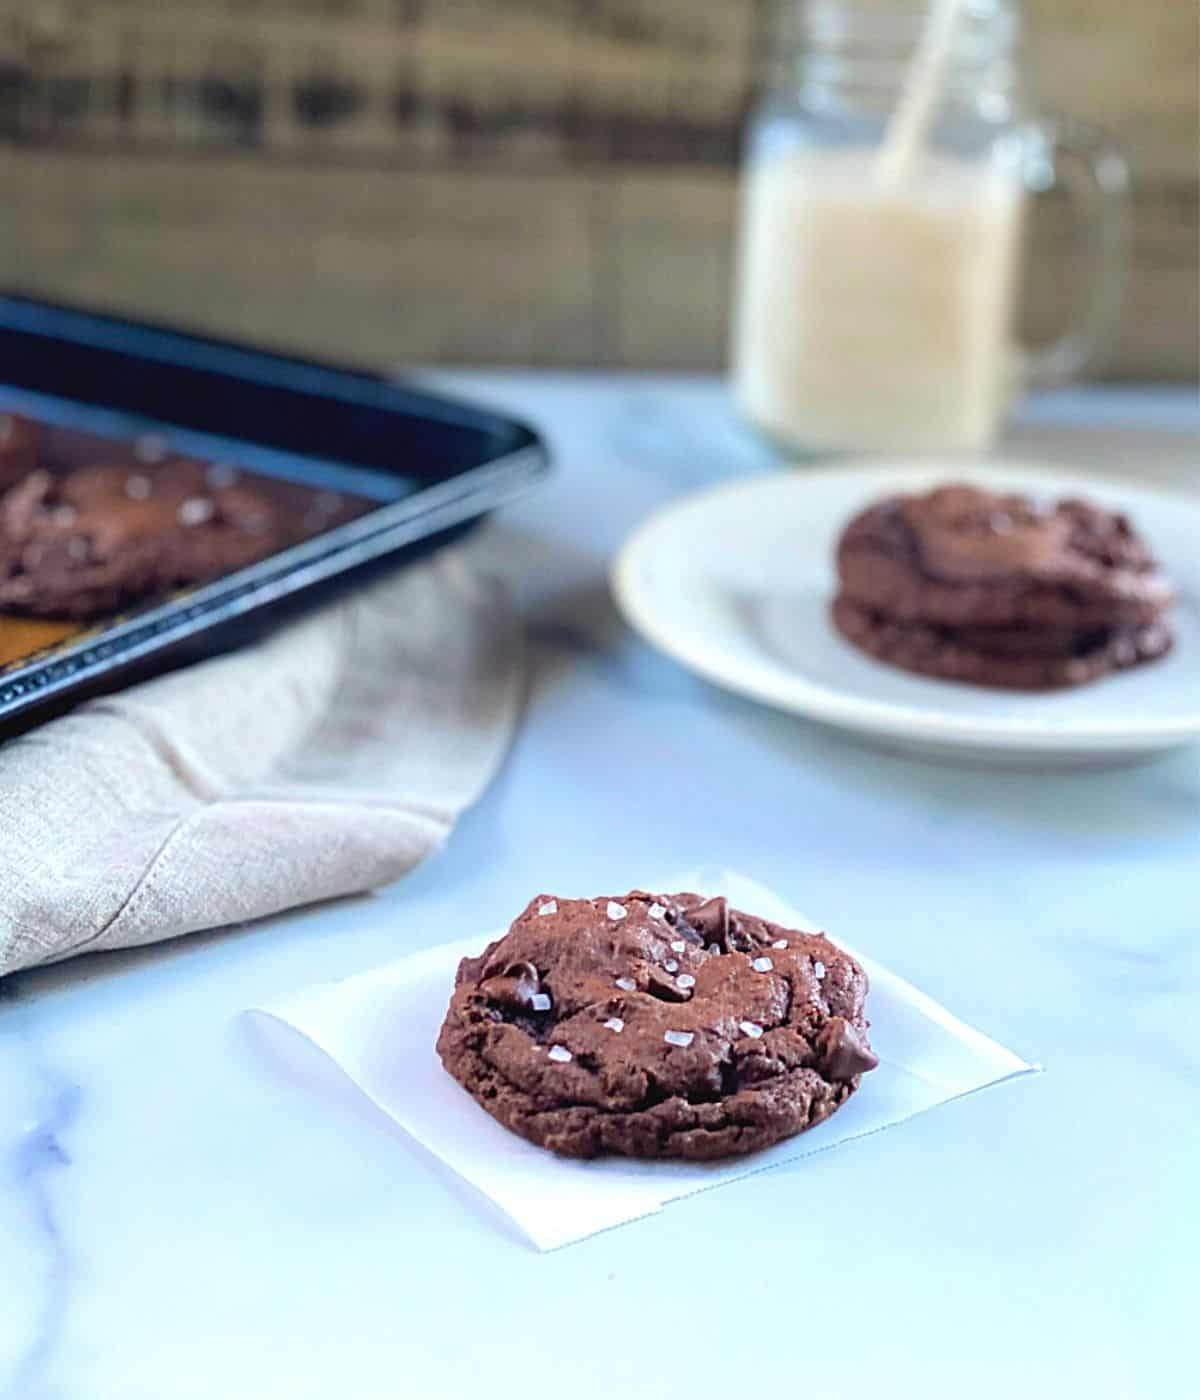 chocolate chip cake batter cookies on wax paper square with sea salt.